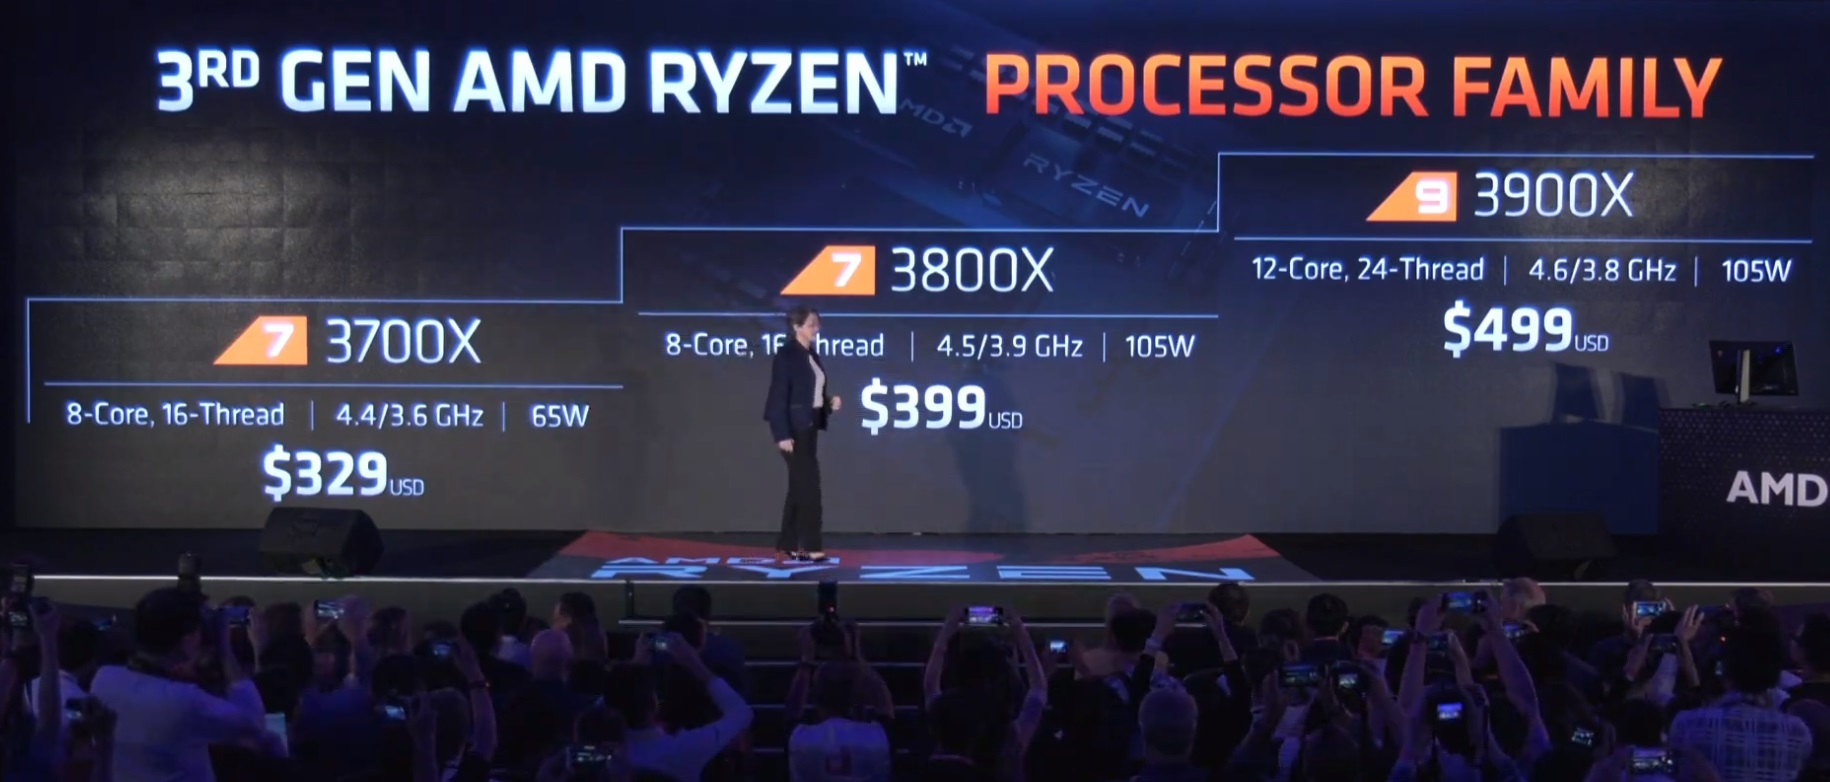 Amd 3rd Gen Ryzen Cpus Announced Ryzen 9 3900x 12 Core Beast Legit Reviews